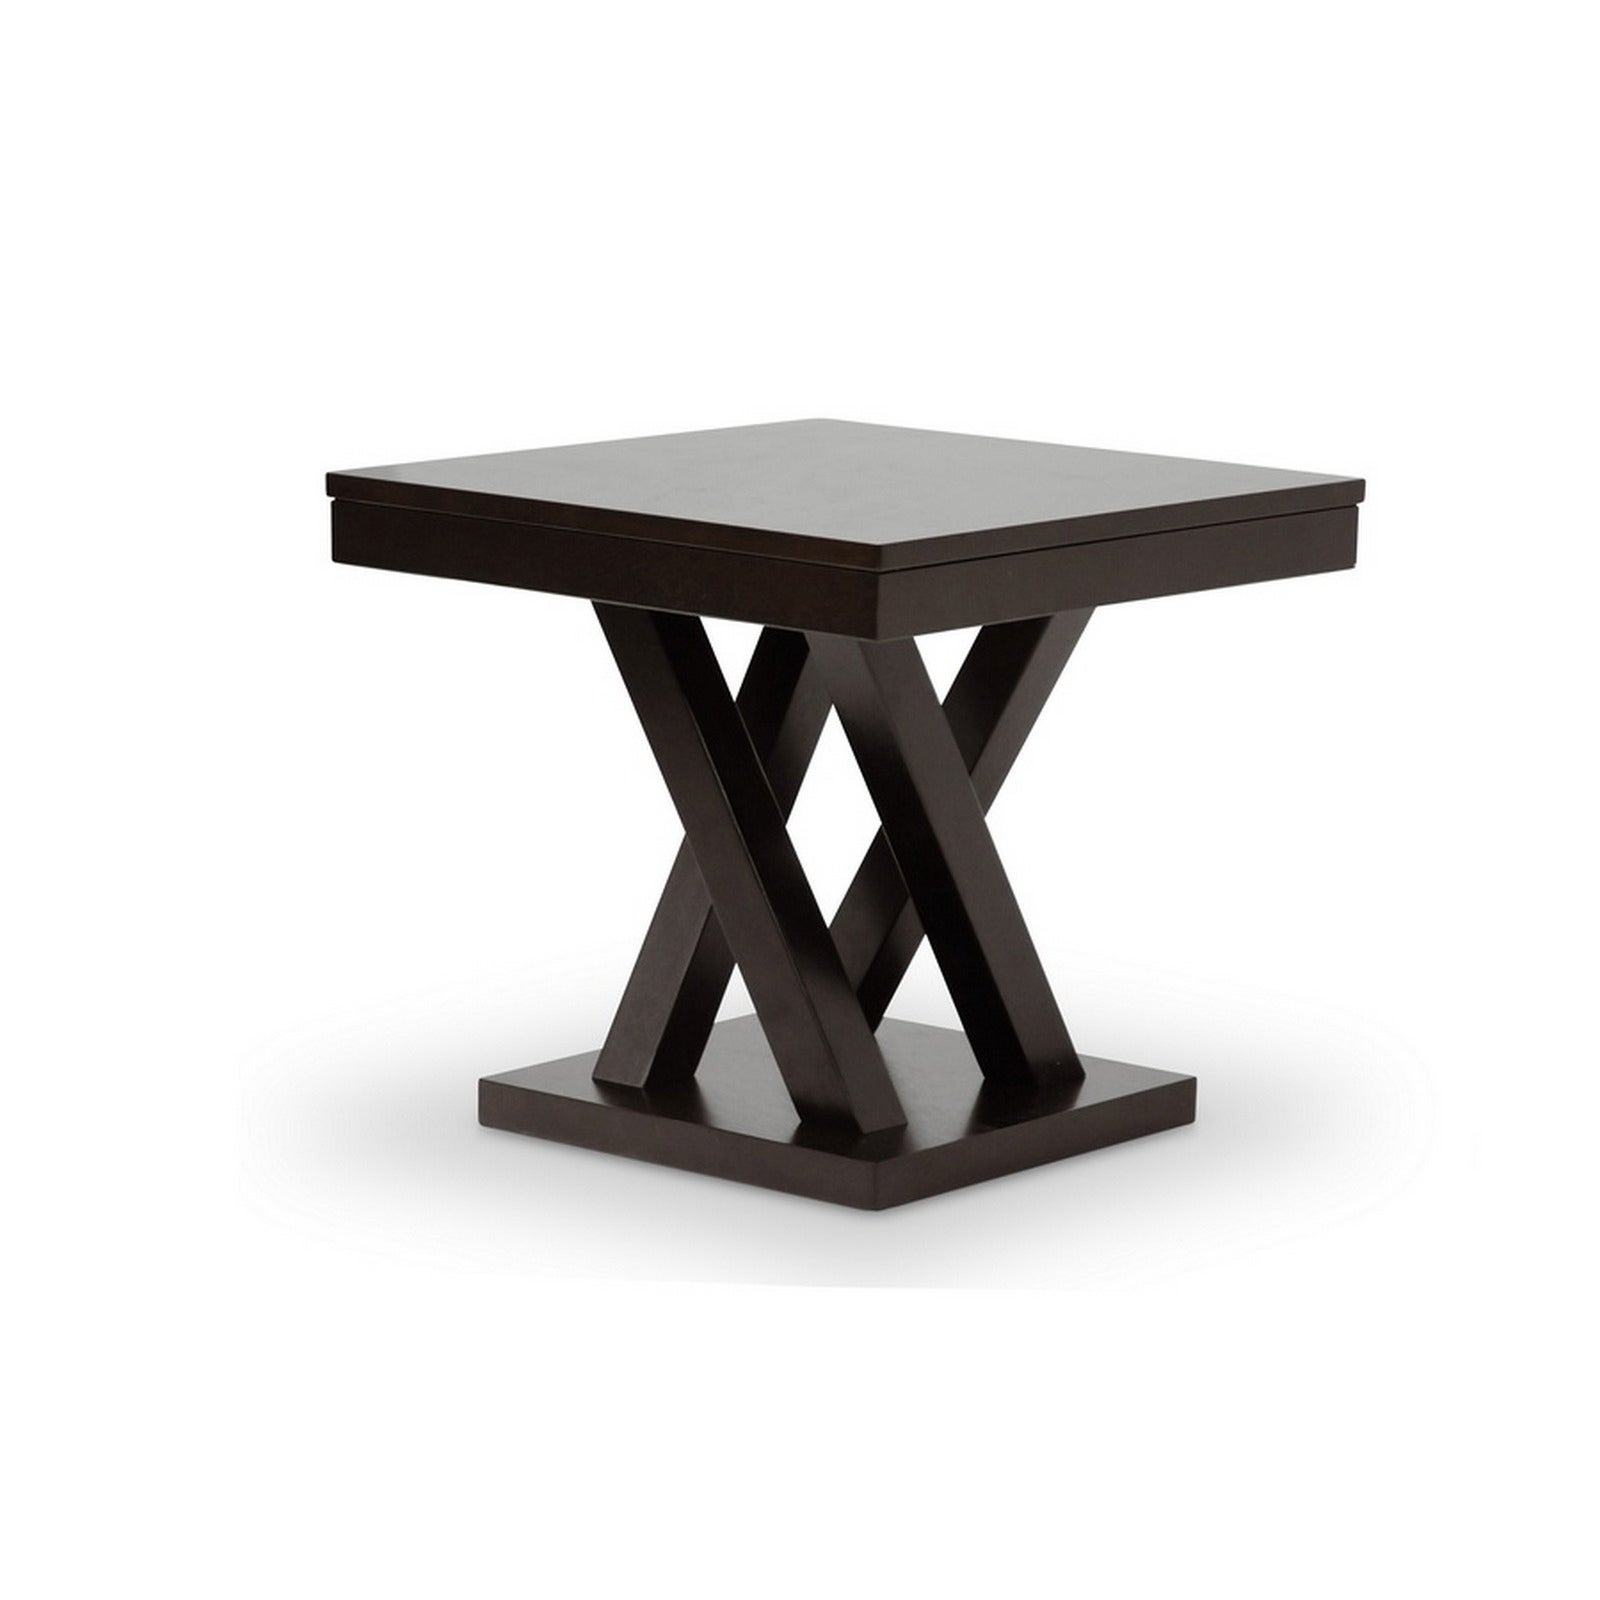 urban designs inch everdon dark brown modern end table black contemporary tables free shipping today vintage white nightstand country style sofa cool metal rustic kitchen and